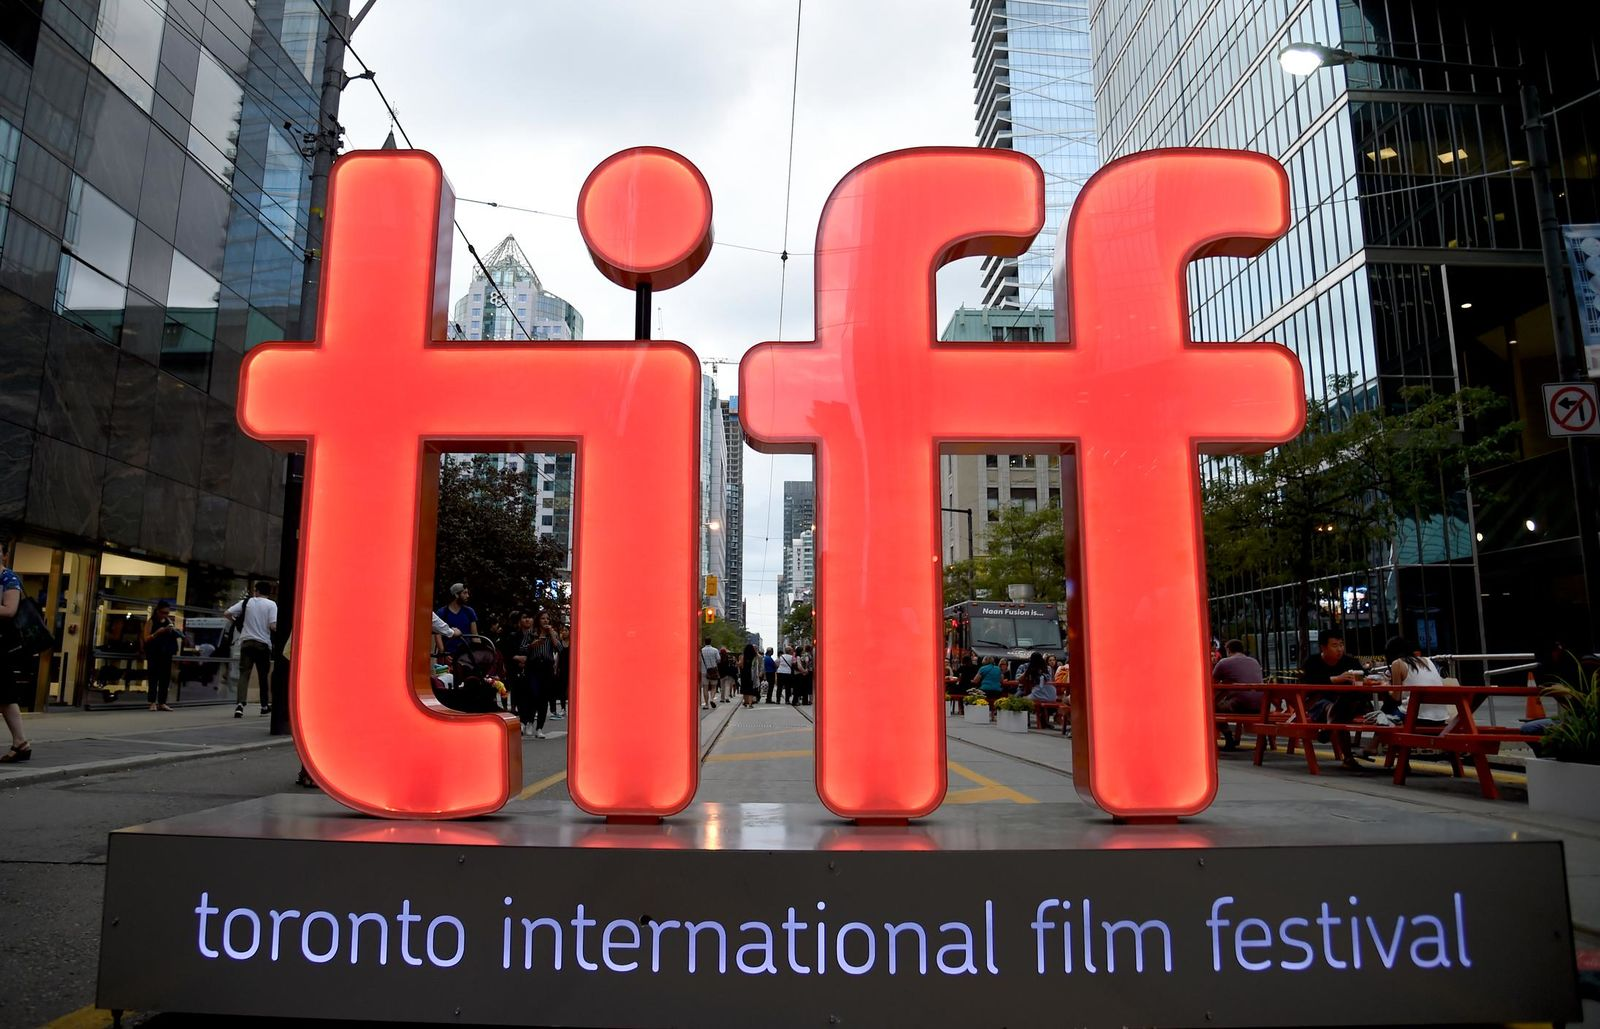 FILE - In this Thursday, Sept. 6, 2018, file photo, a view of a festival sign appears on Day 1 of the Toronto International Film Festival in Toronto. (Photo by Chris Pizzello/Invision/AP, File)